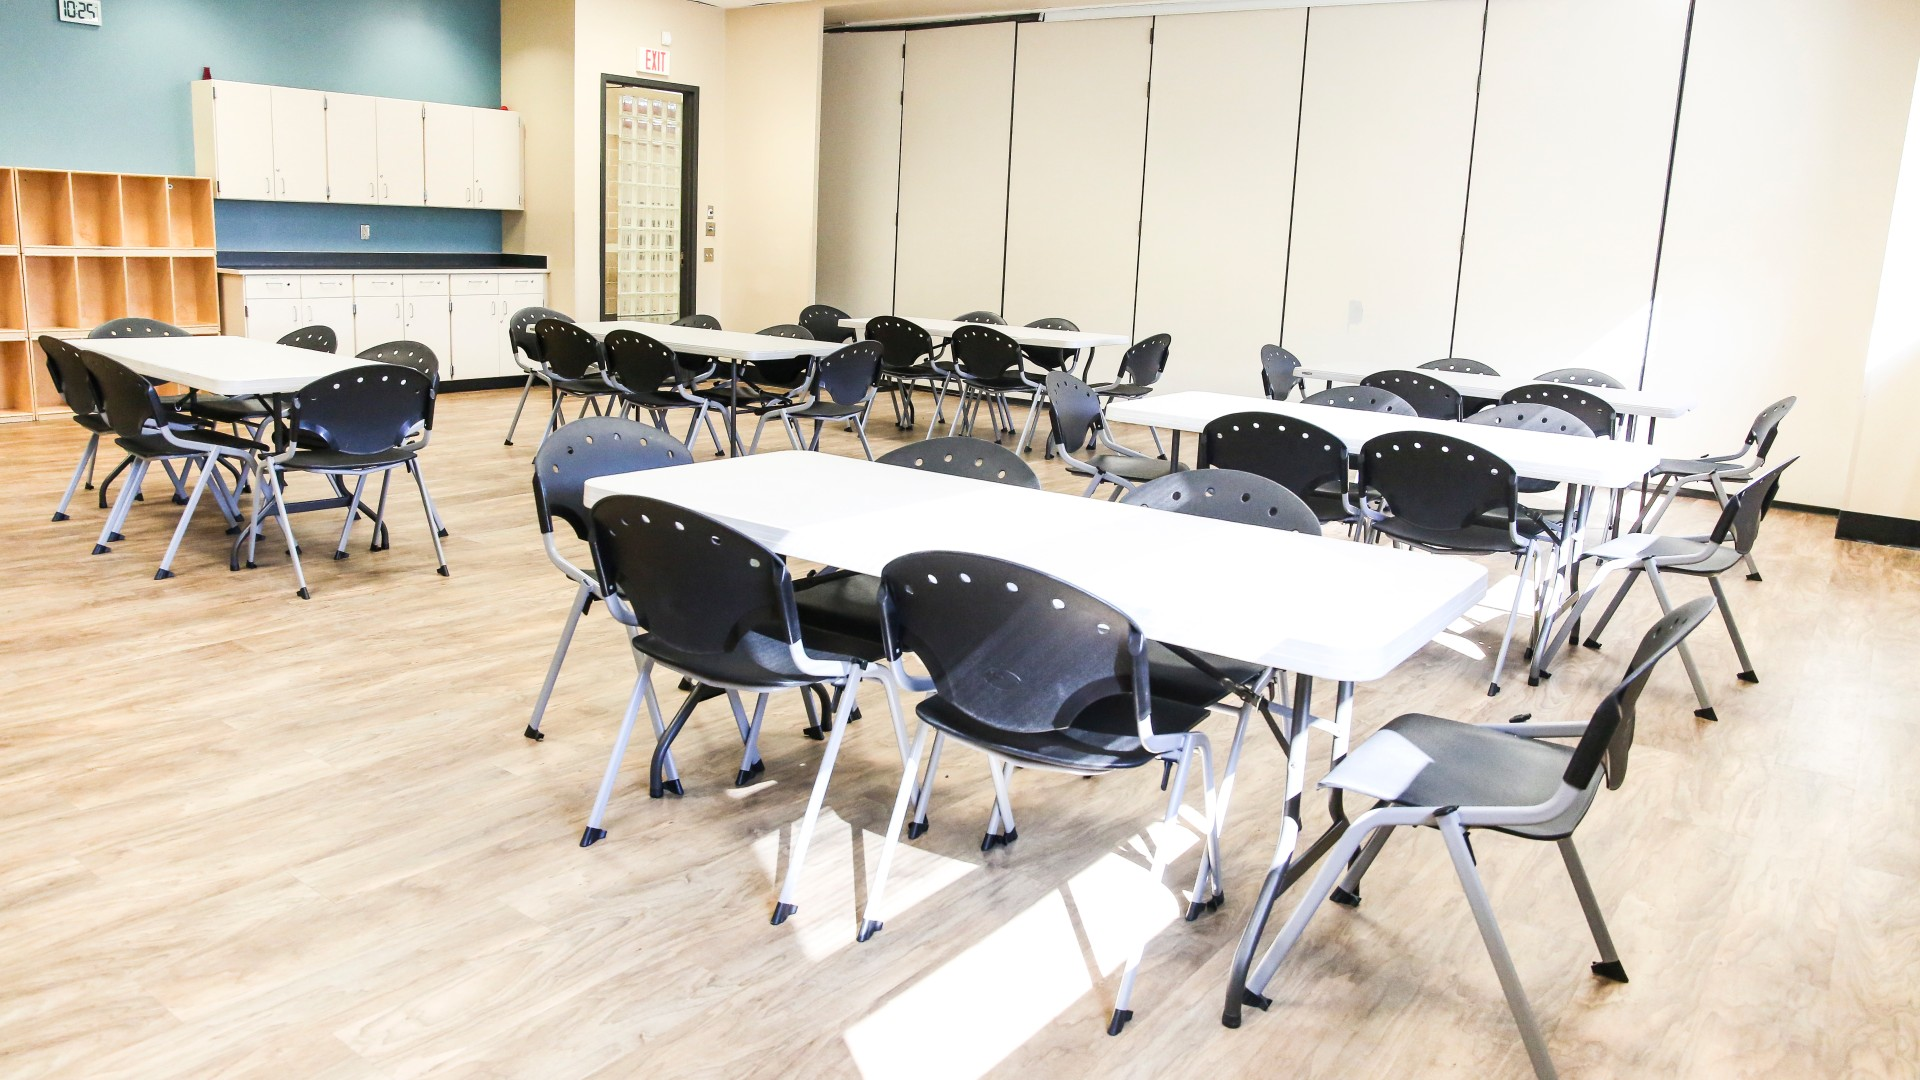 One of the classroom rentals with tables and chairs at Barwell Road Park